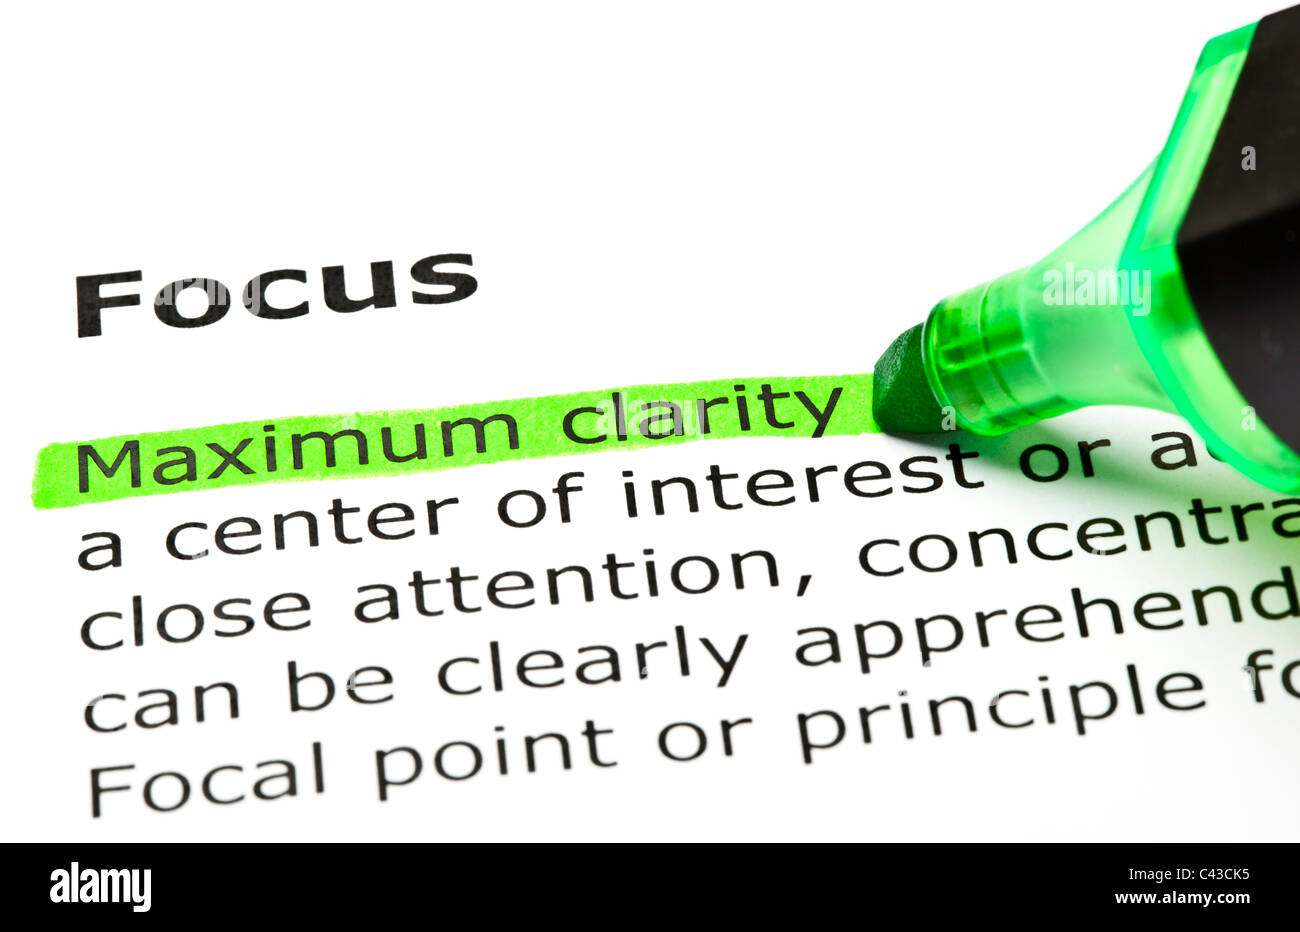 'Maximum clarity' highlighted in green, under the heading 'Focus' - Stock Image